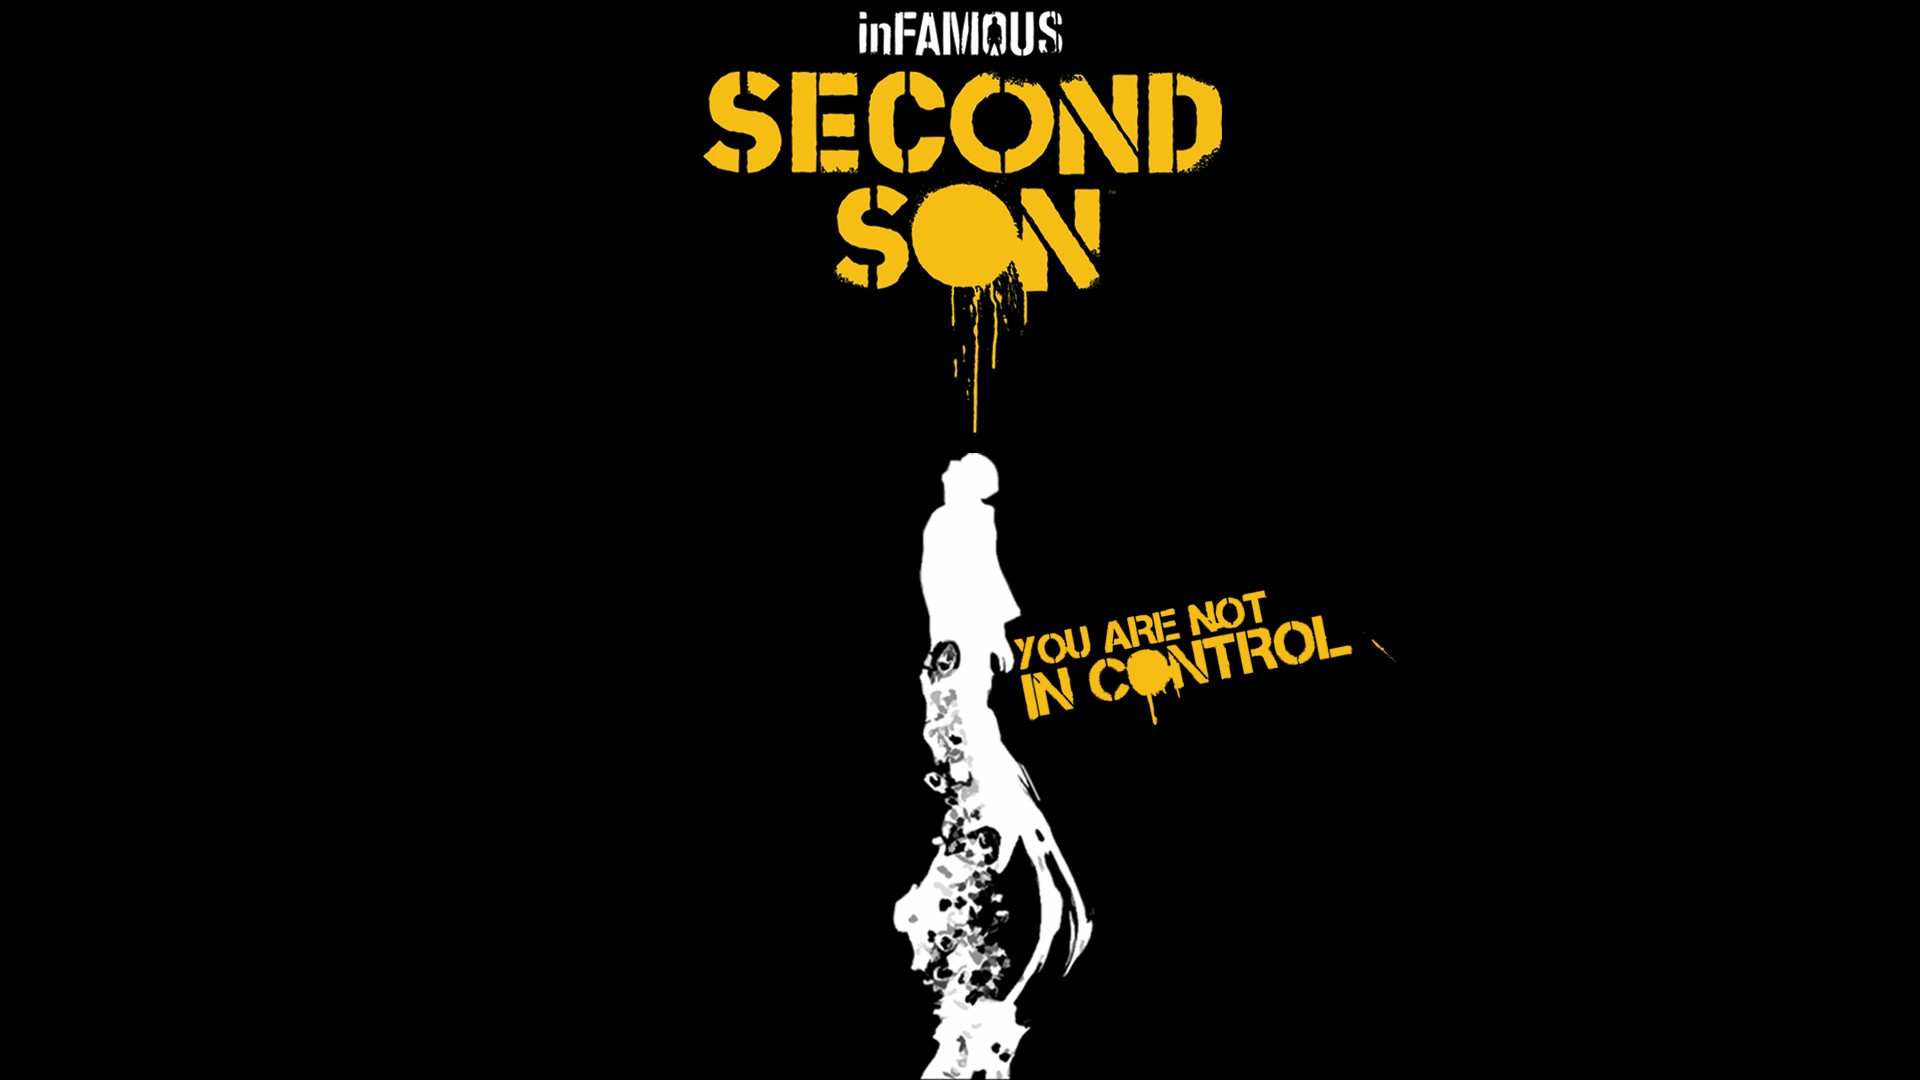 Infamous Second Son Logo Wallpaper